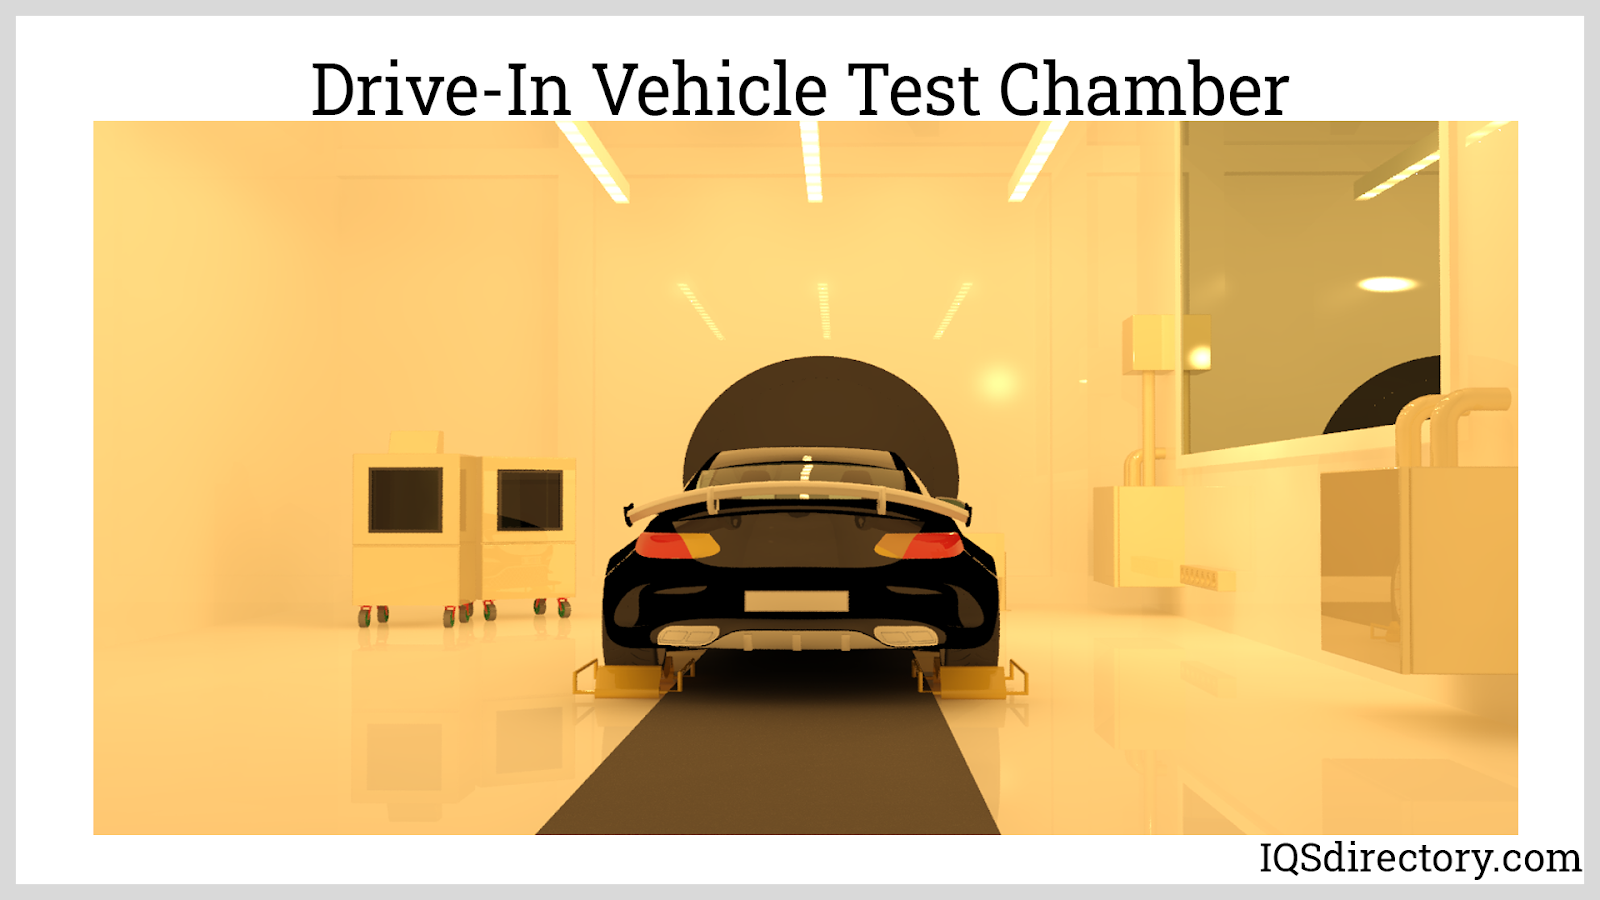 Drive-In Vehicle Test Chamber